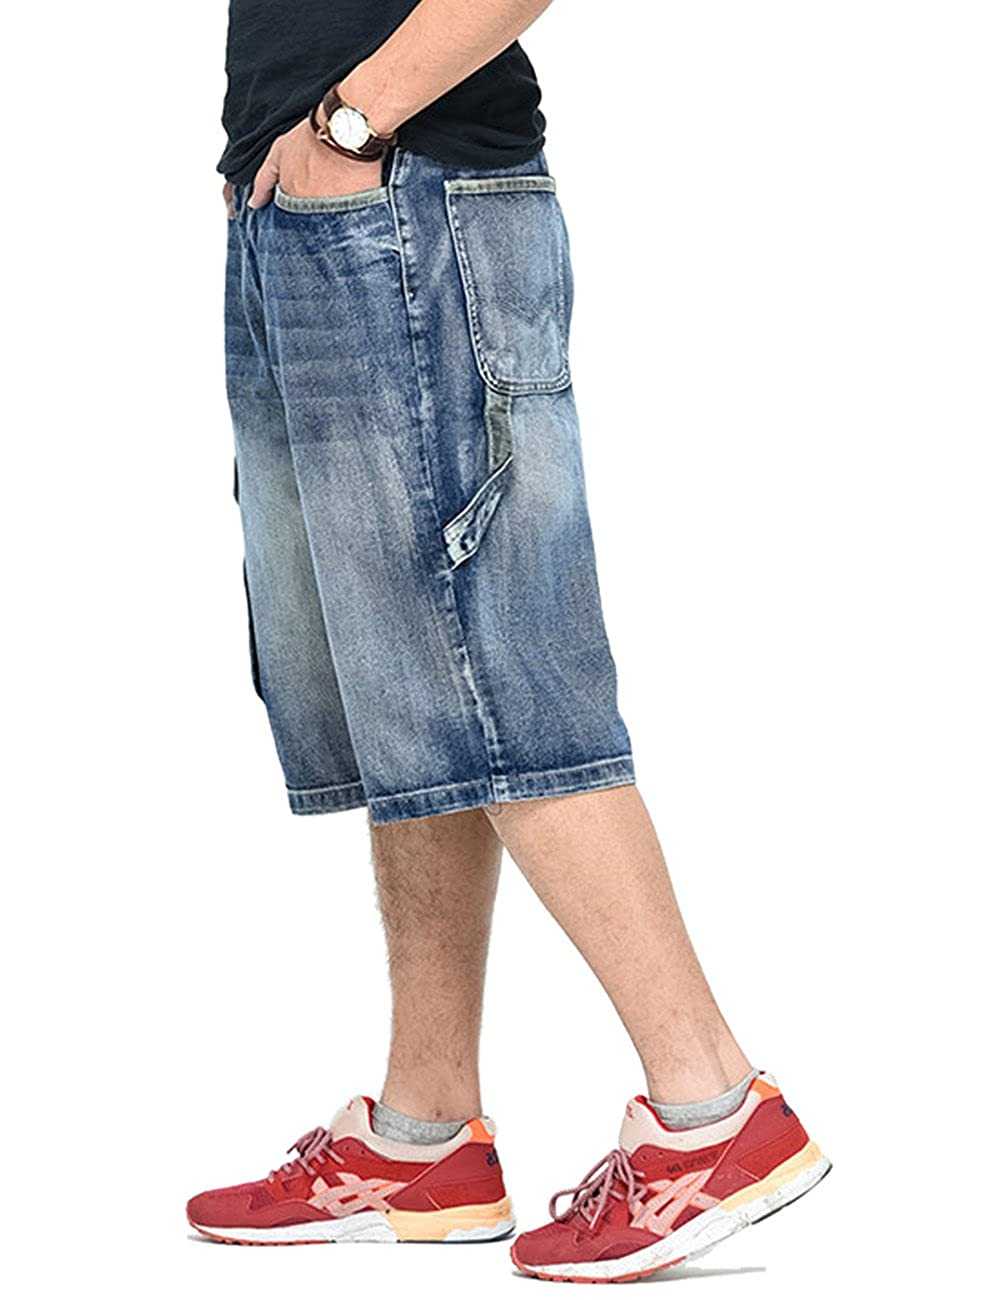 PLAYBIGG Men's Relaxed-fit Straight Denim Cargo Jeans Shorts